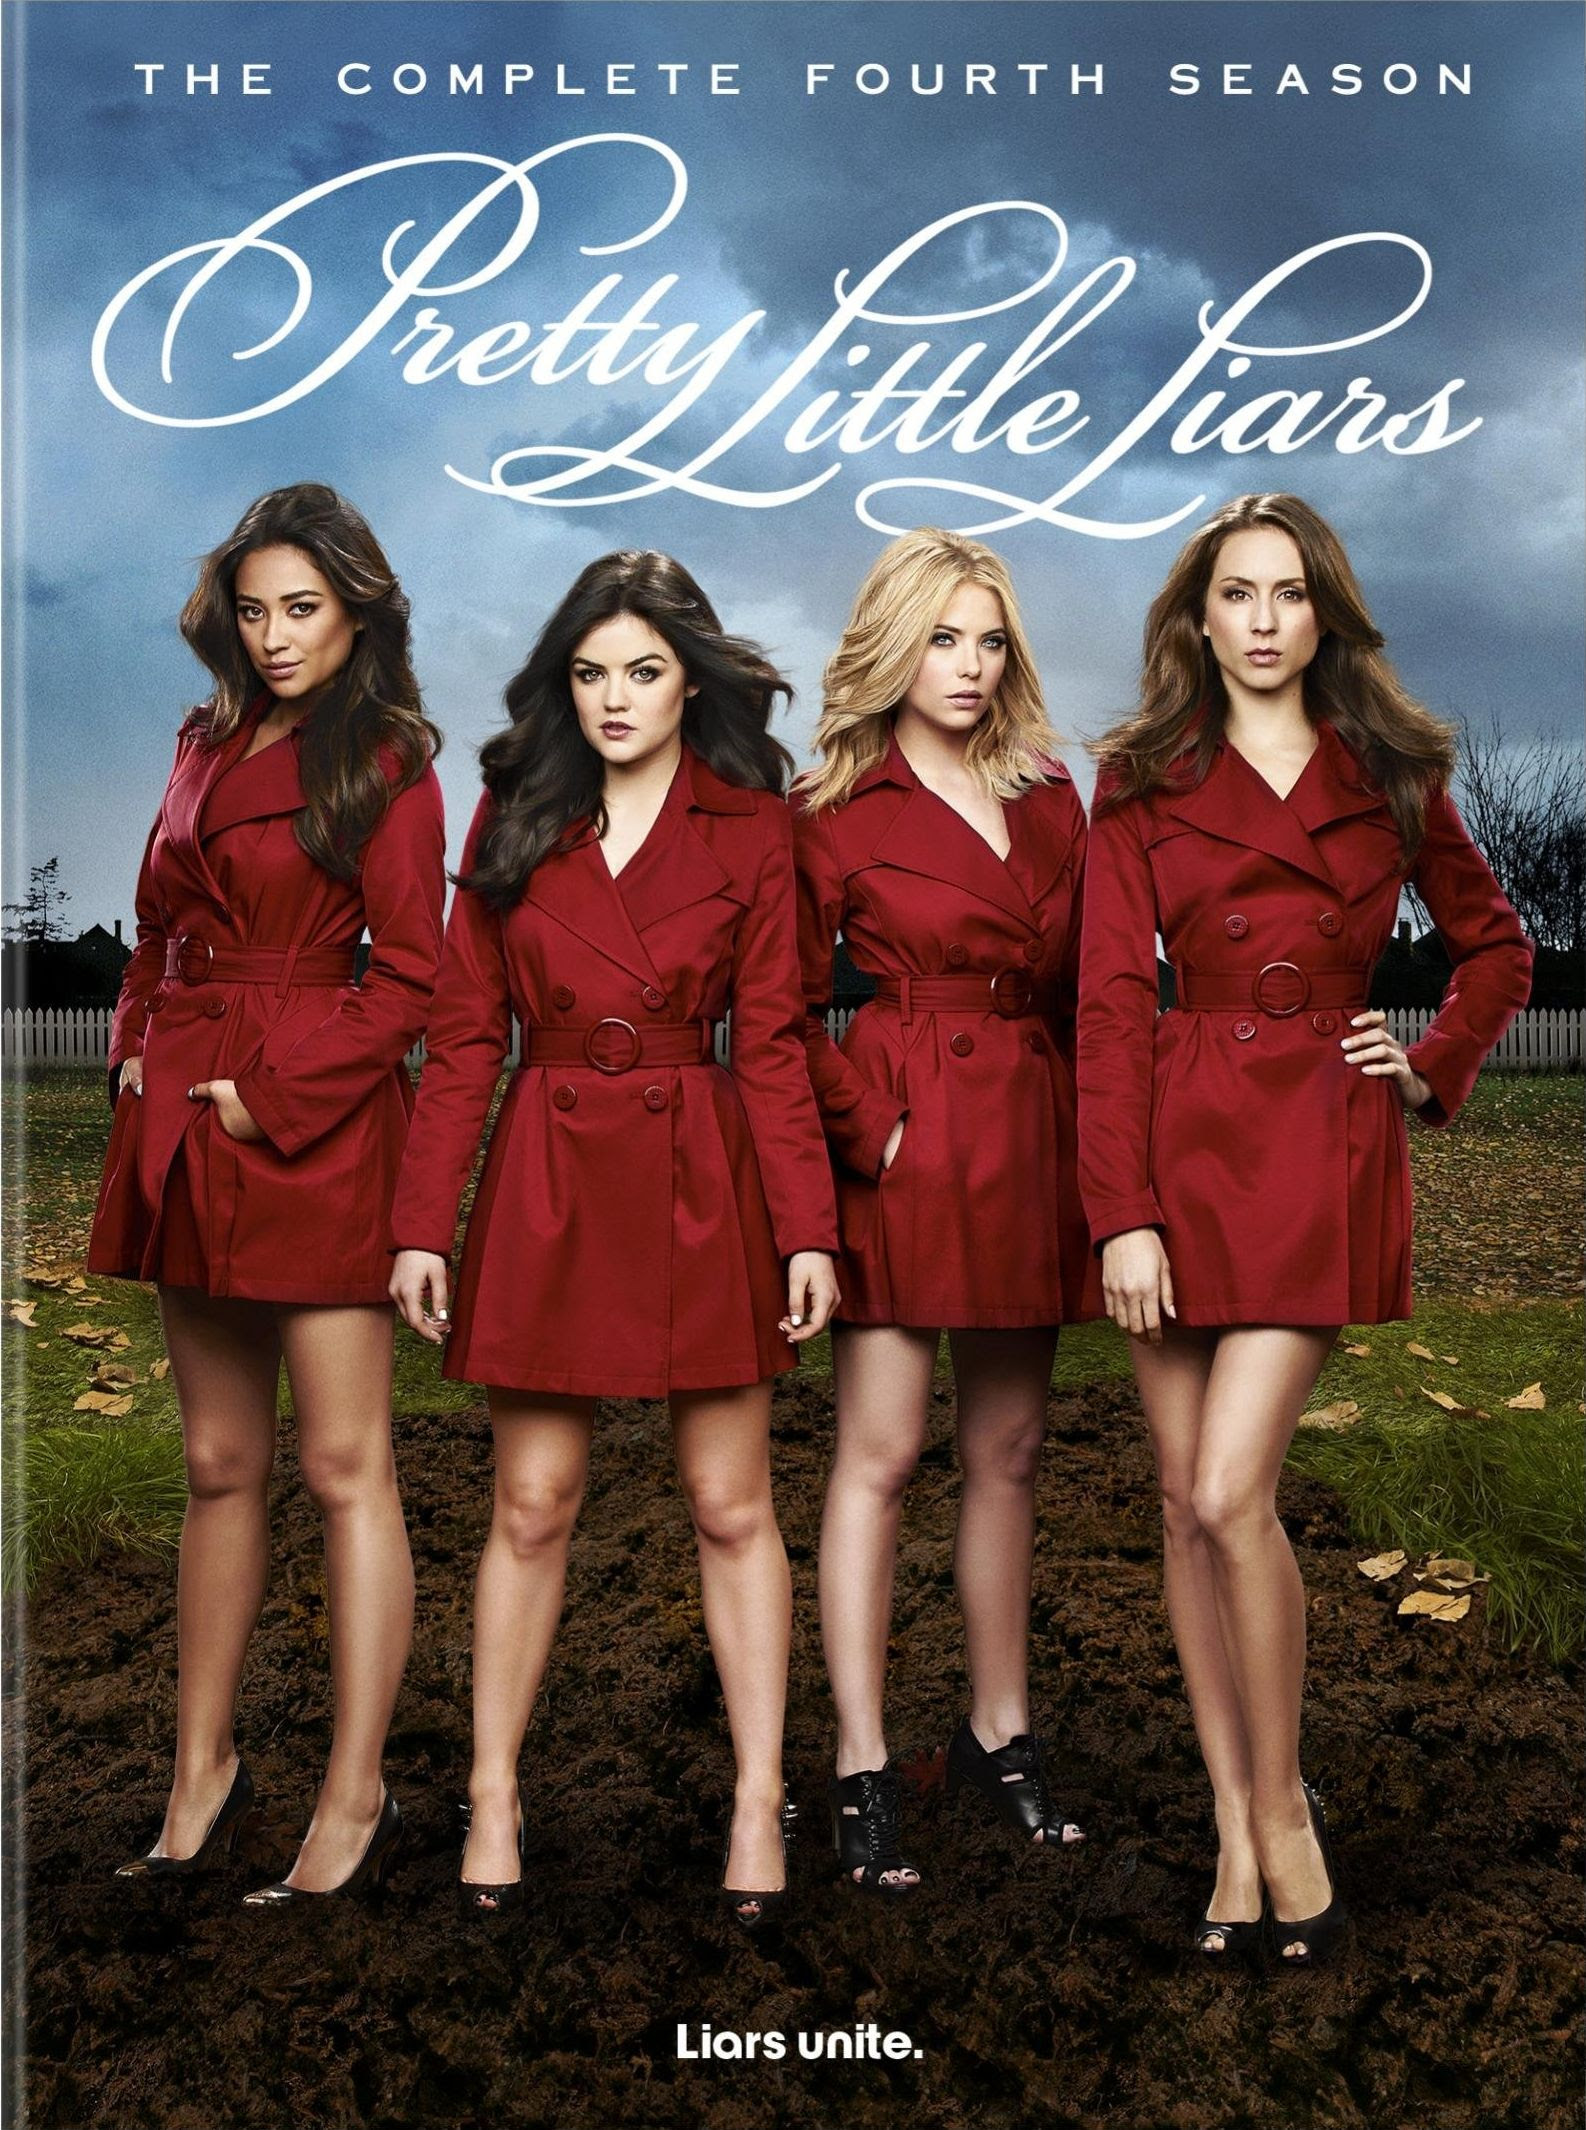 http://www.dvdsreleasedates.com/covers/pretty-little-liars-the-complete-fourth-season-dvd-cover-52.jpg